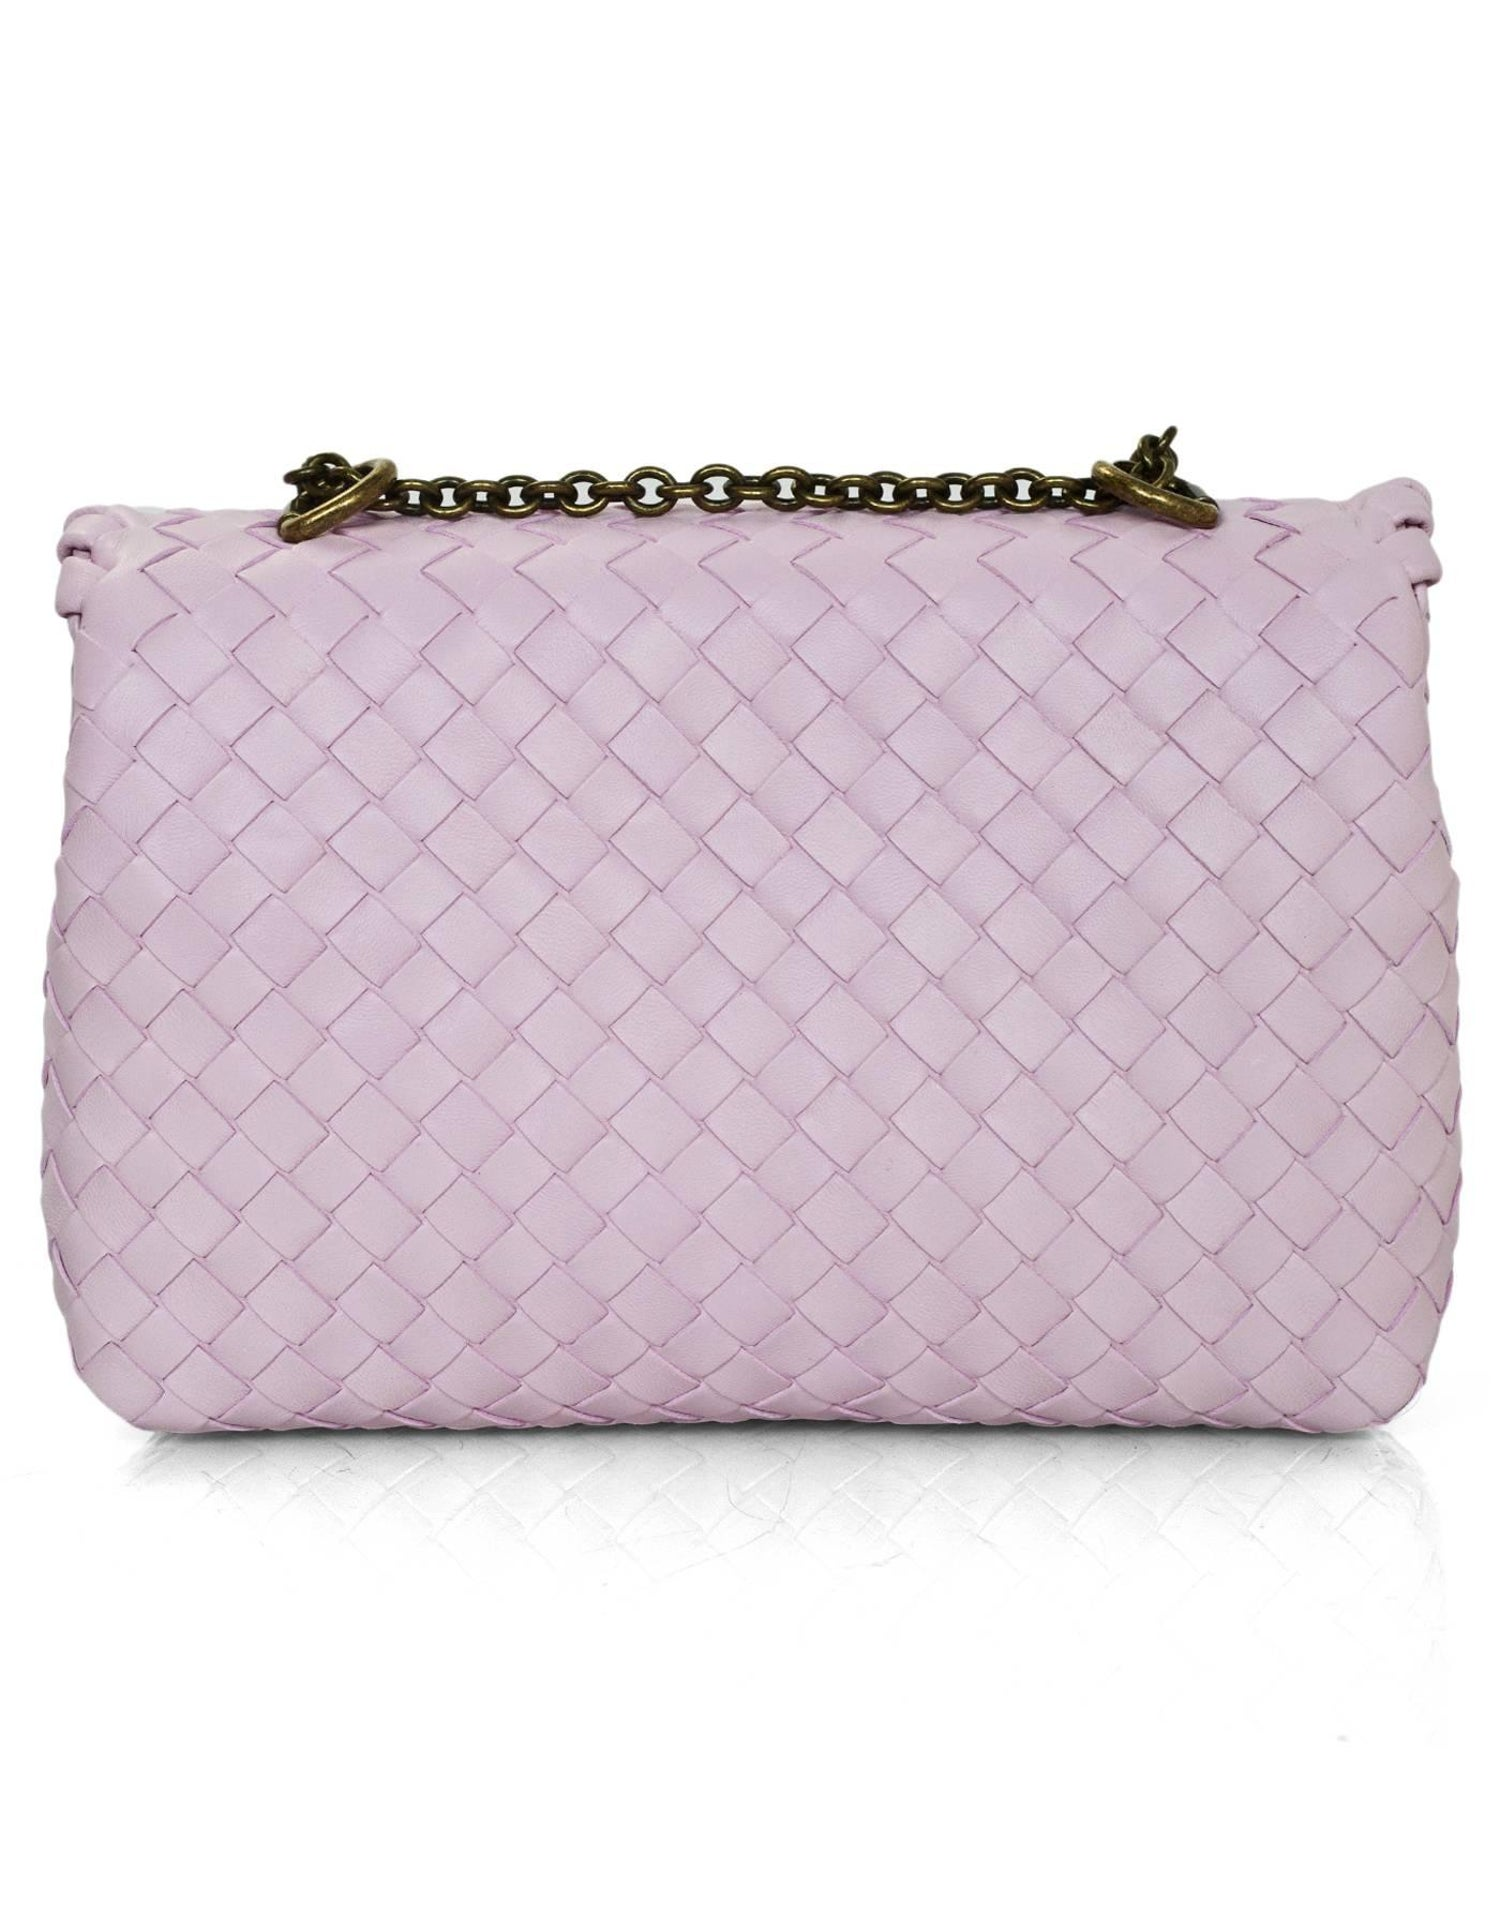 Bottega Veneta Light Pink Dragee Intrecciato Woven Leather Baby Olimpia Bag  For Sale at 1stdibs 8e2c9846e1a02